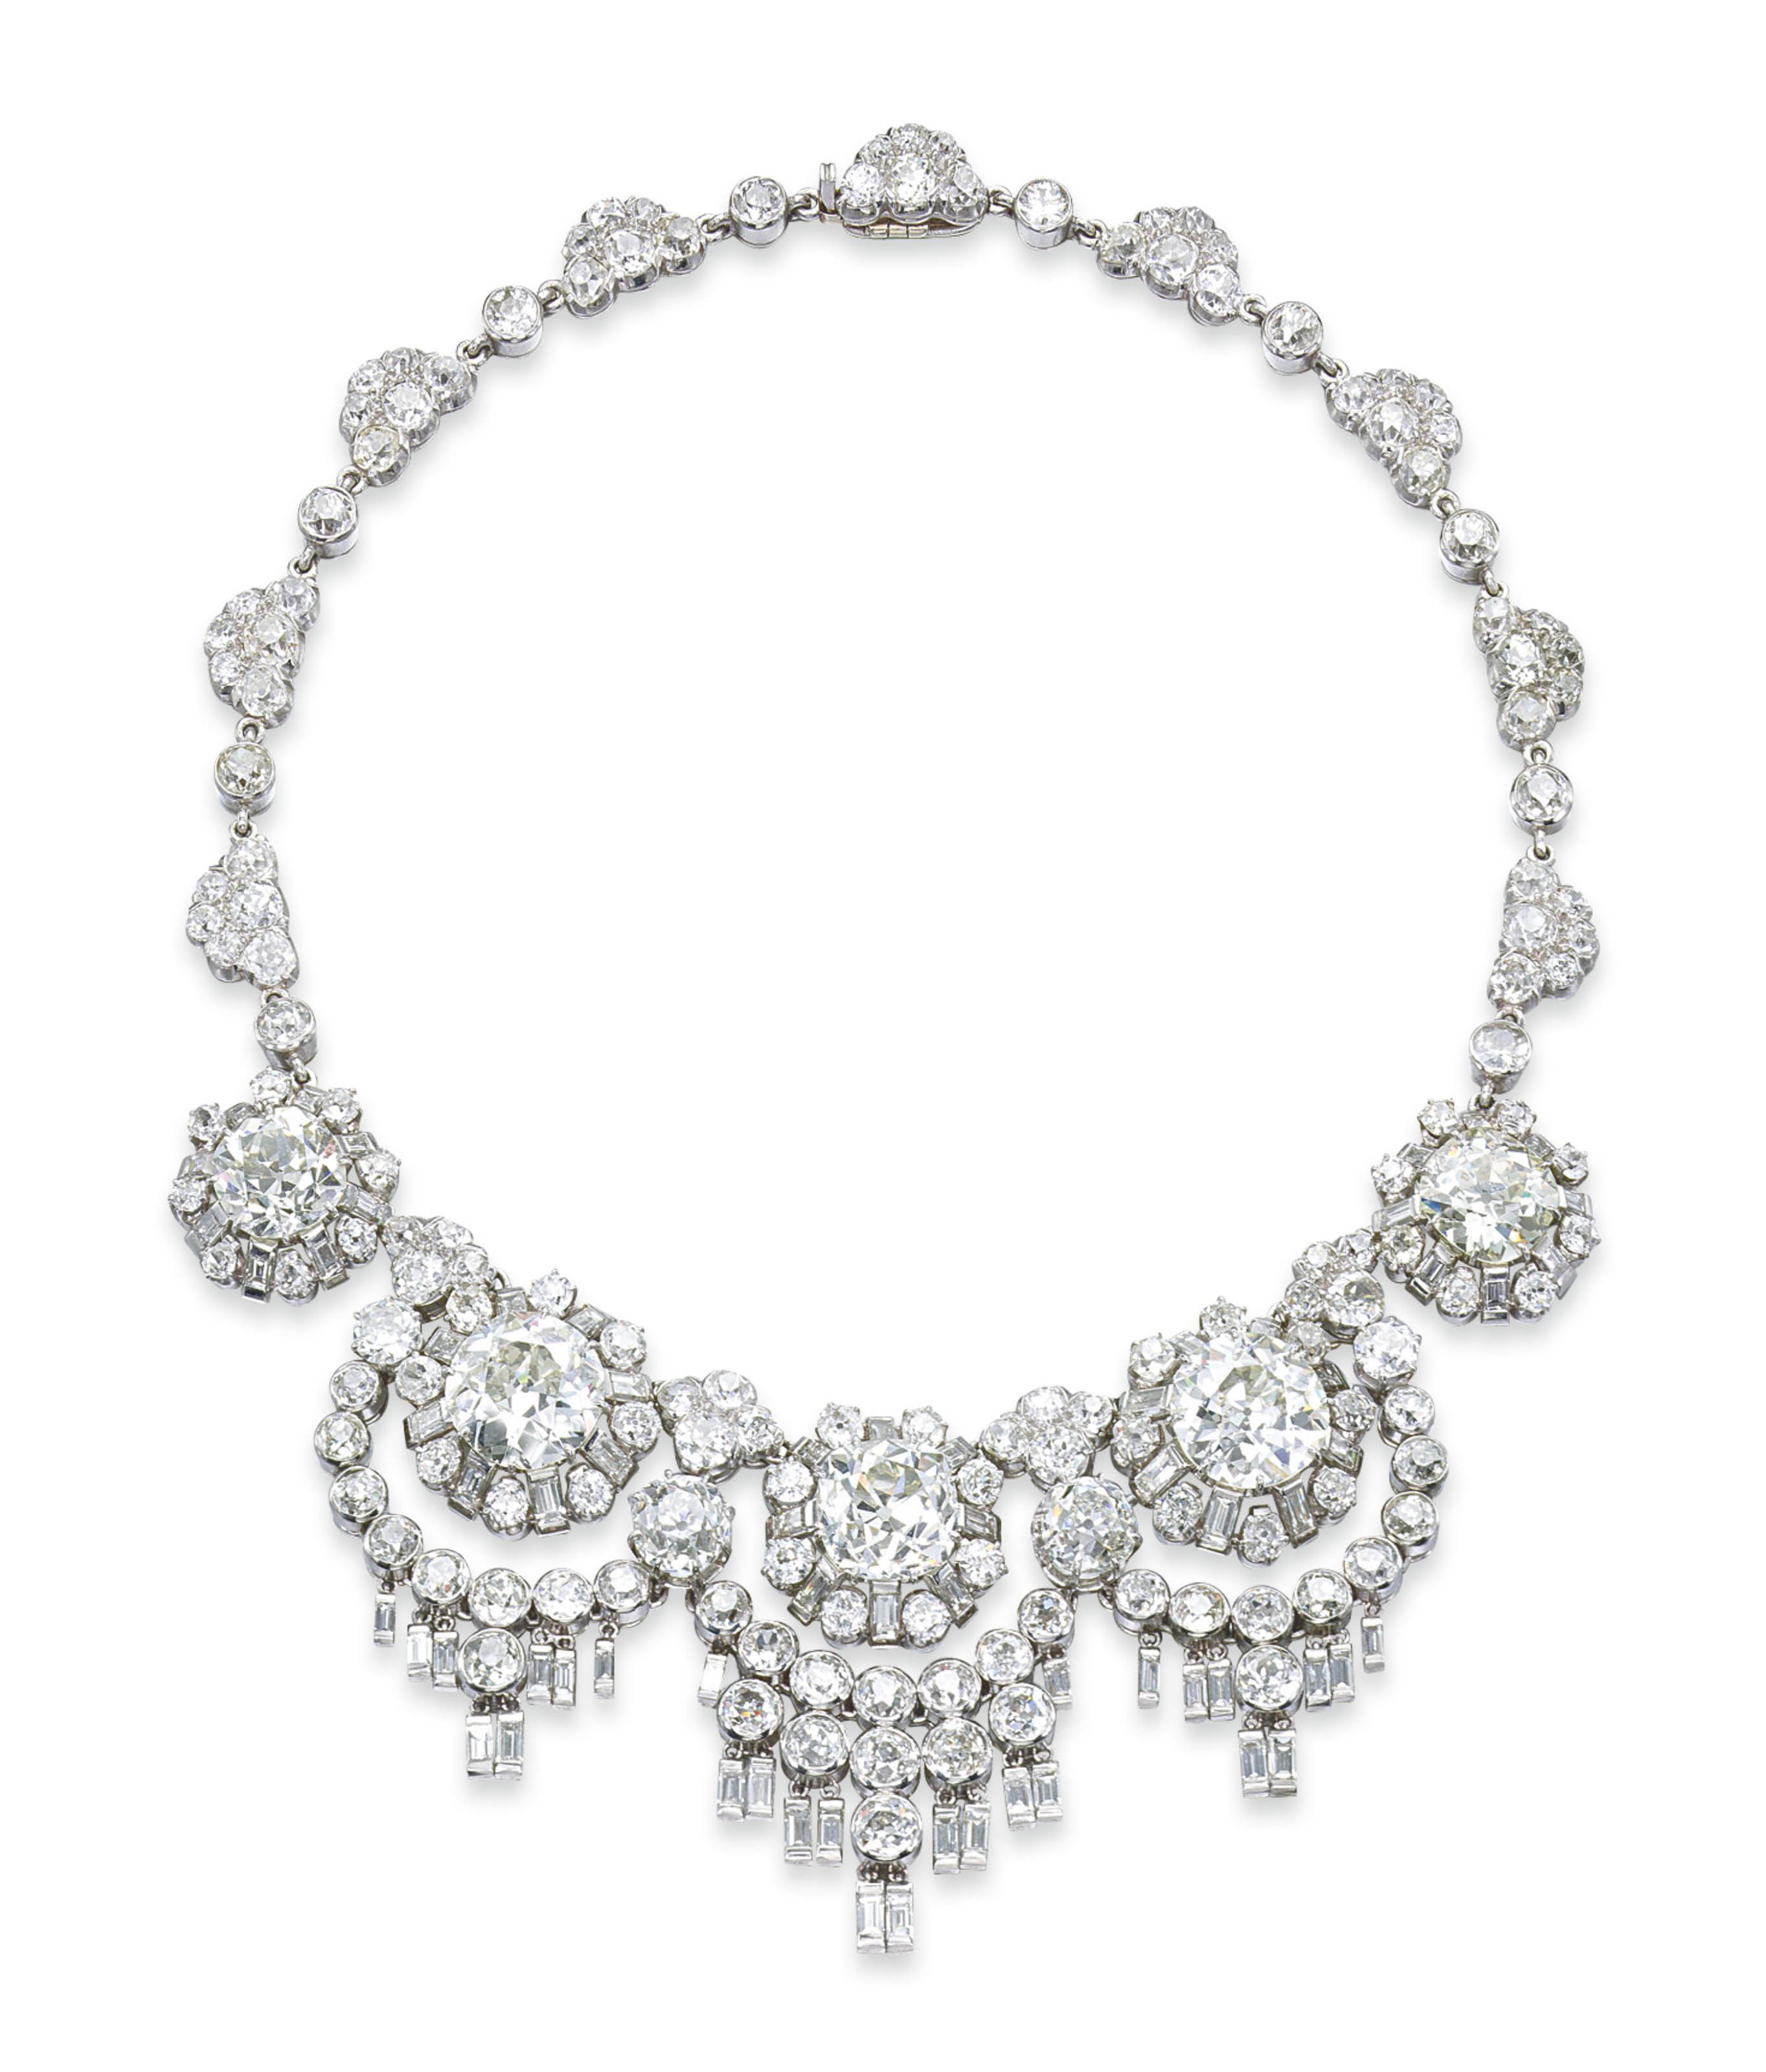 A UNIQUE DIAMOND NECKLACE, BY RENÉ BOIVIN